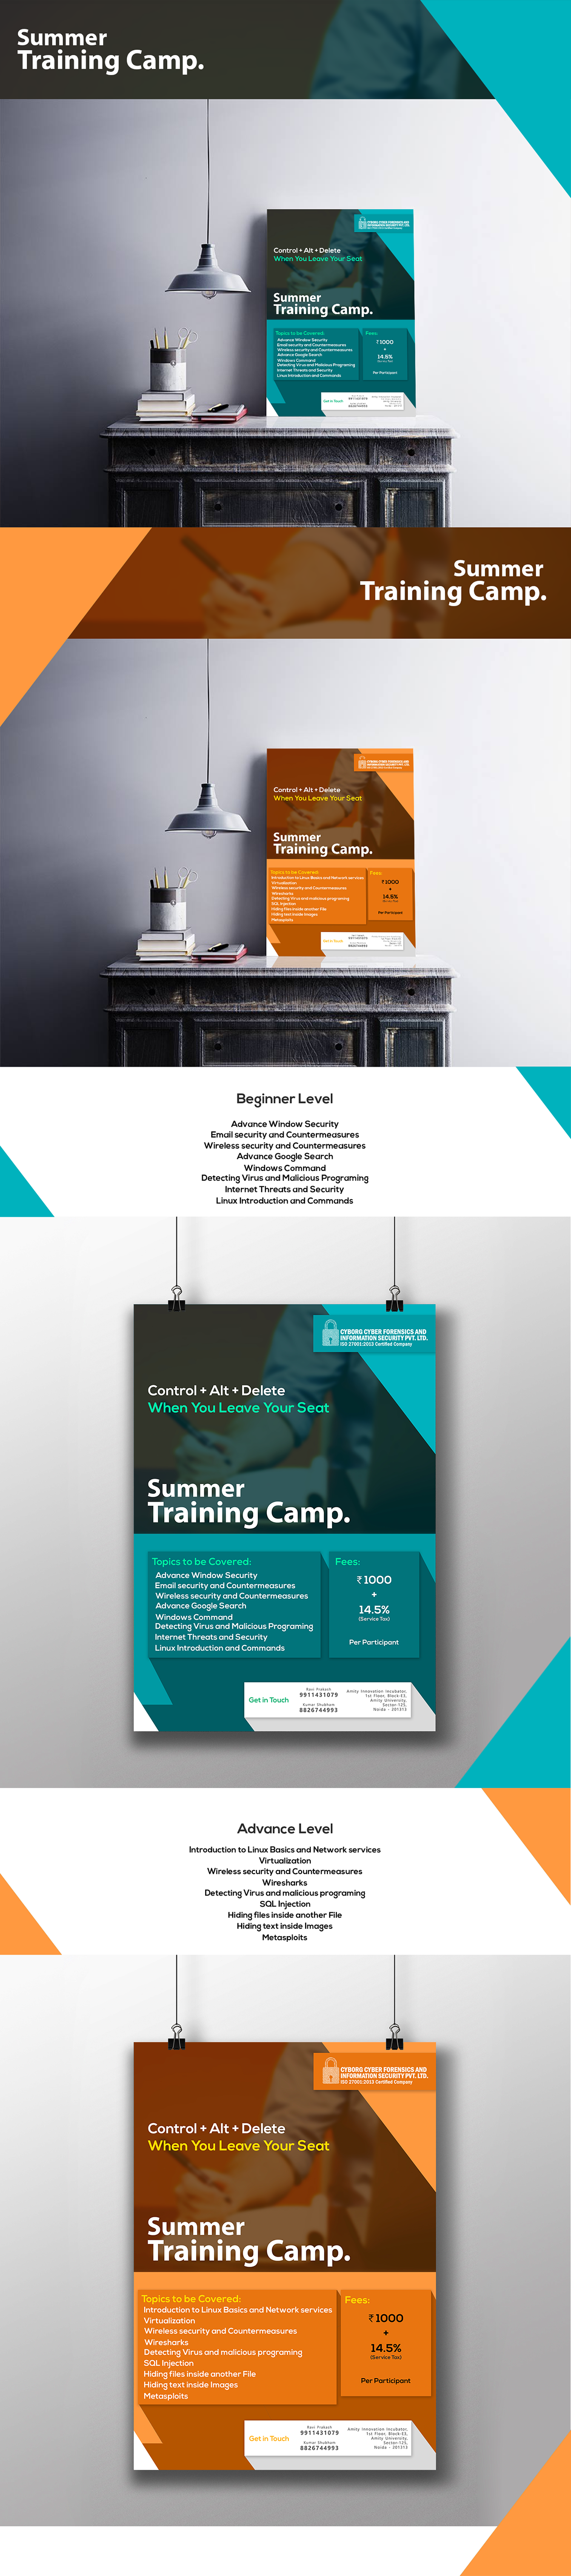 Summer Camp  Training Poster on Pantone Canvas Gallery